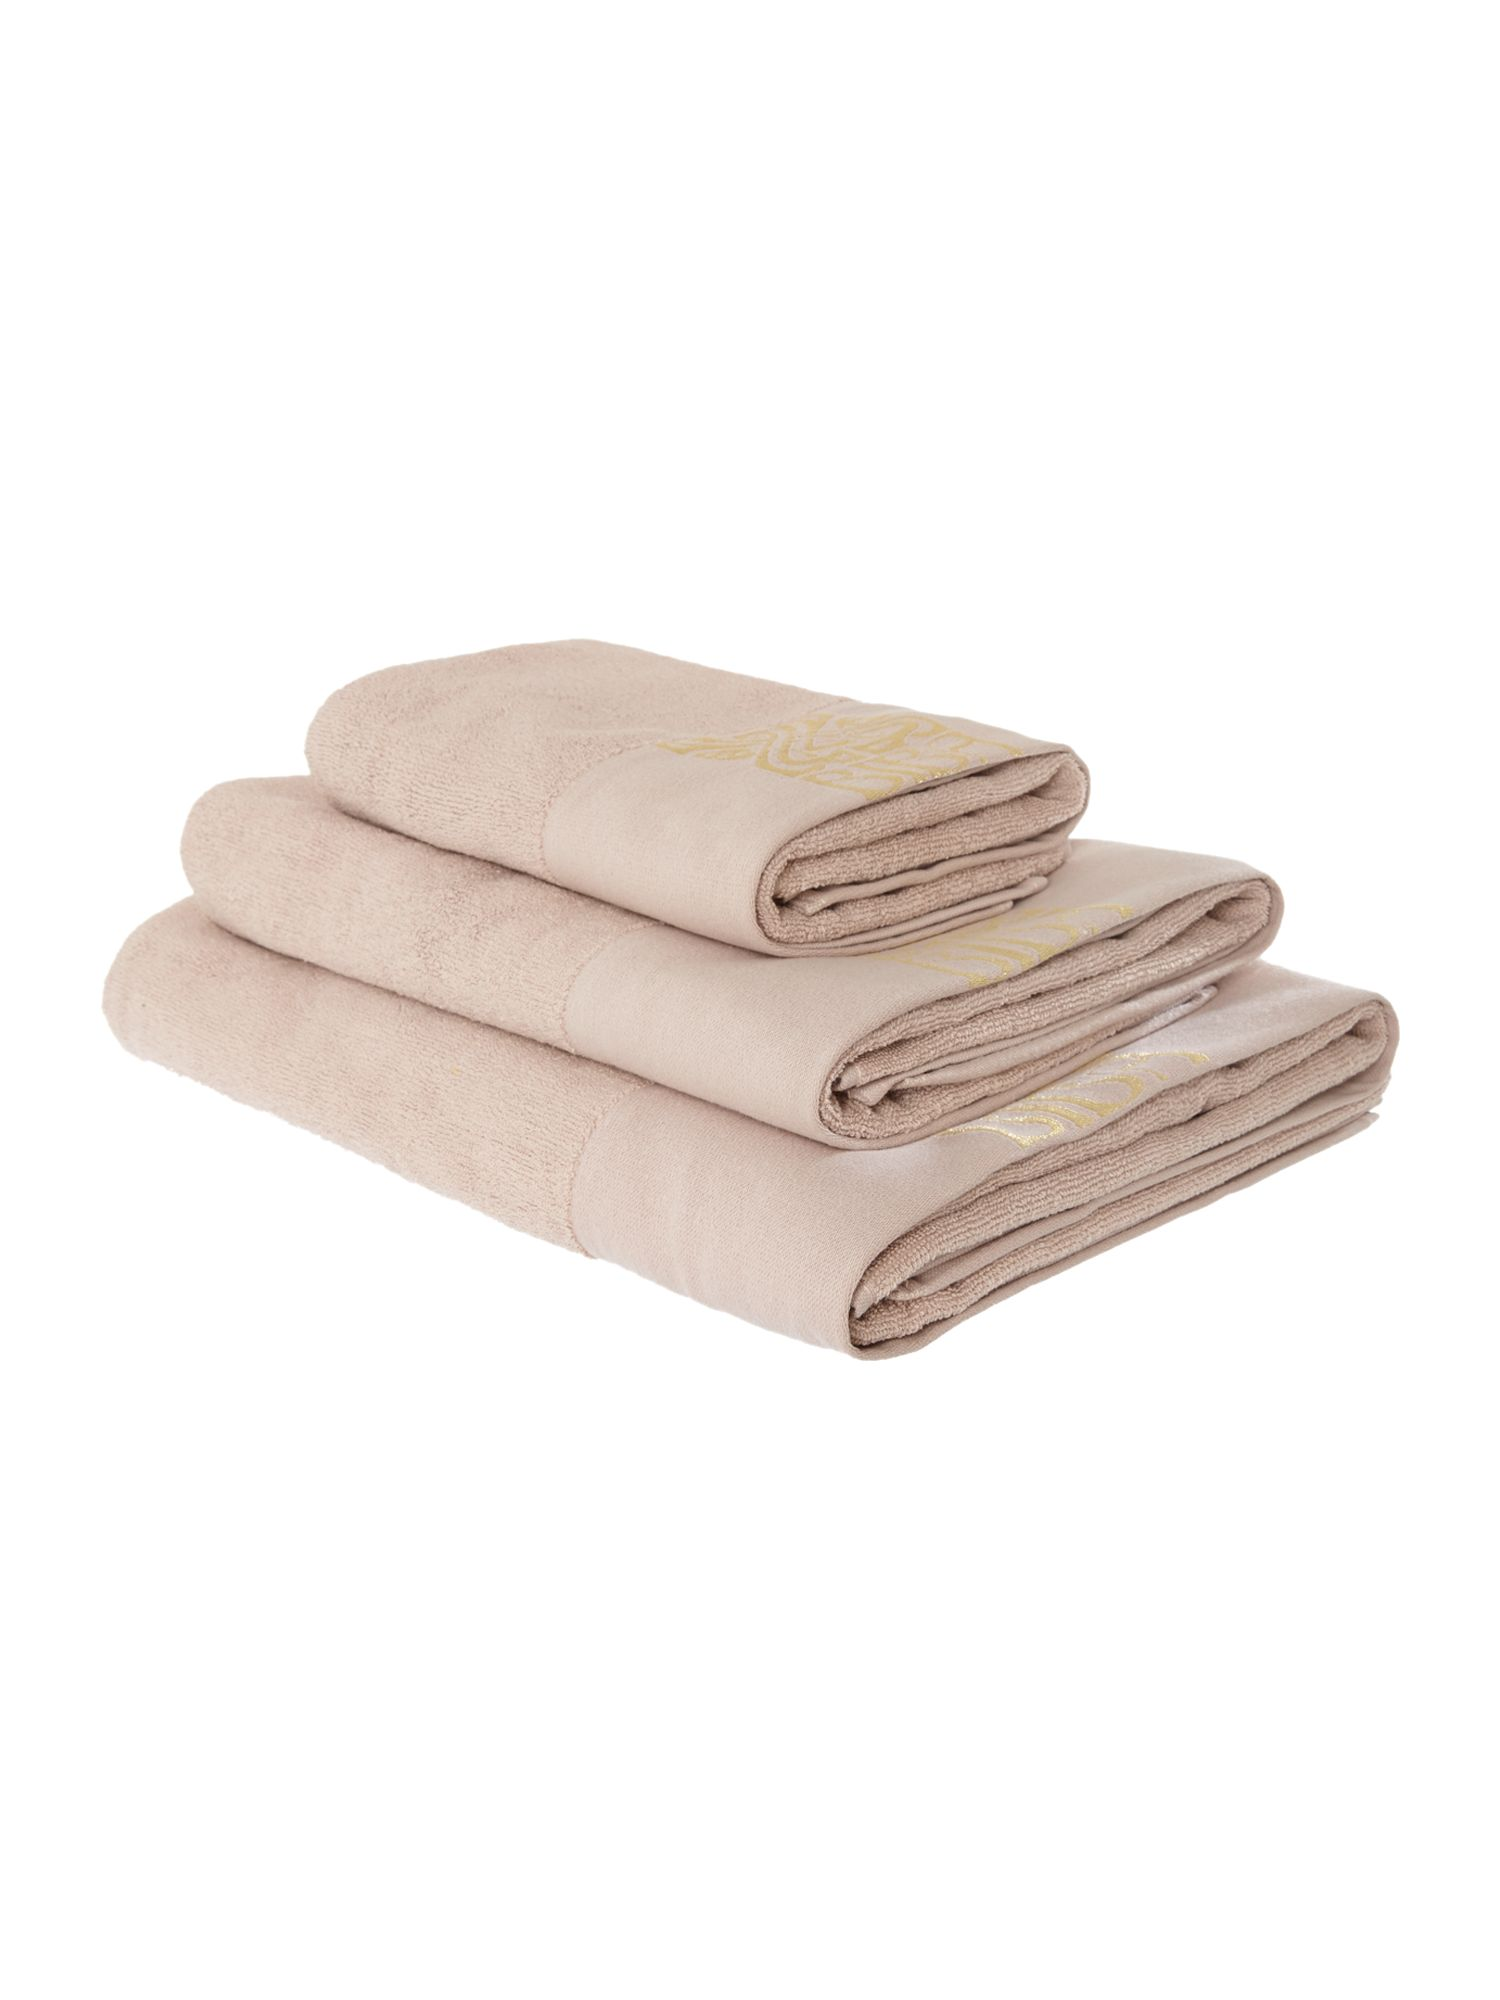 Biba Logo Blush Towel Collection